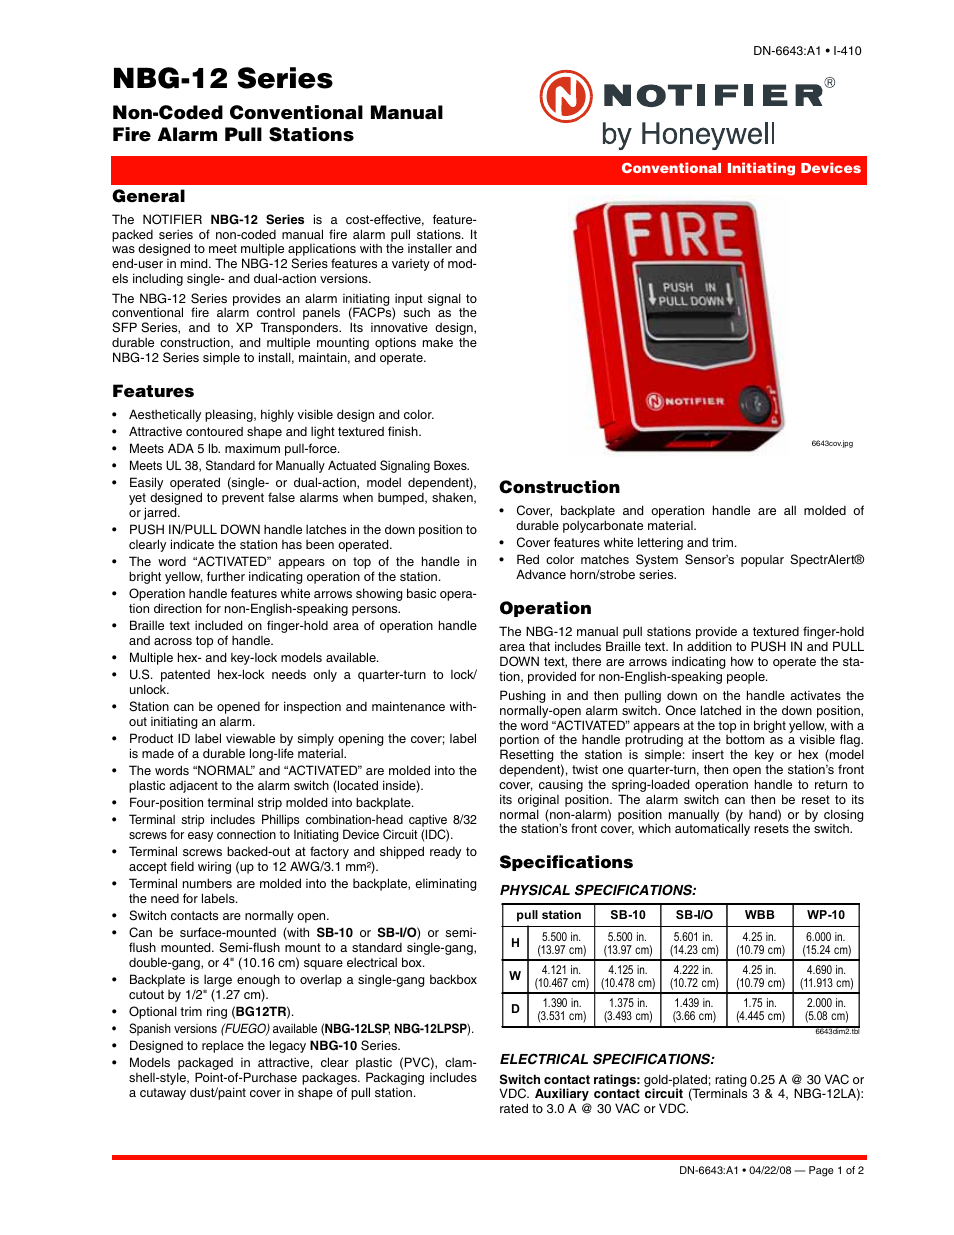 Notifier NBG-12 Series User Manual | 2 pages